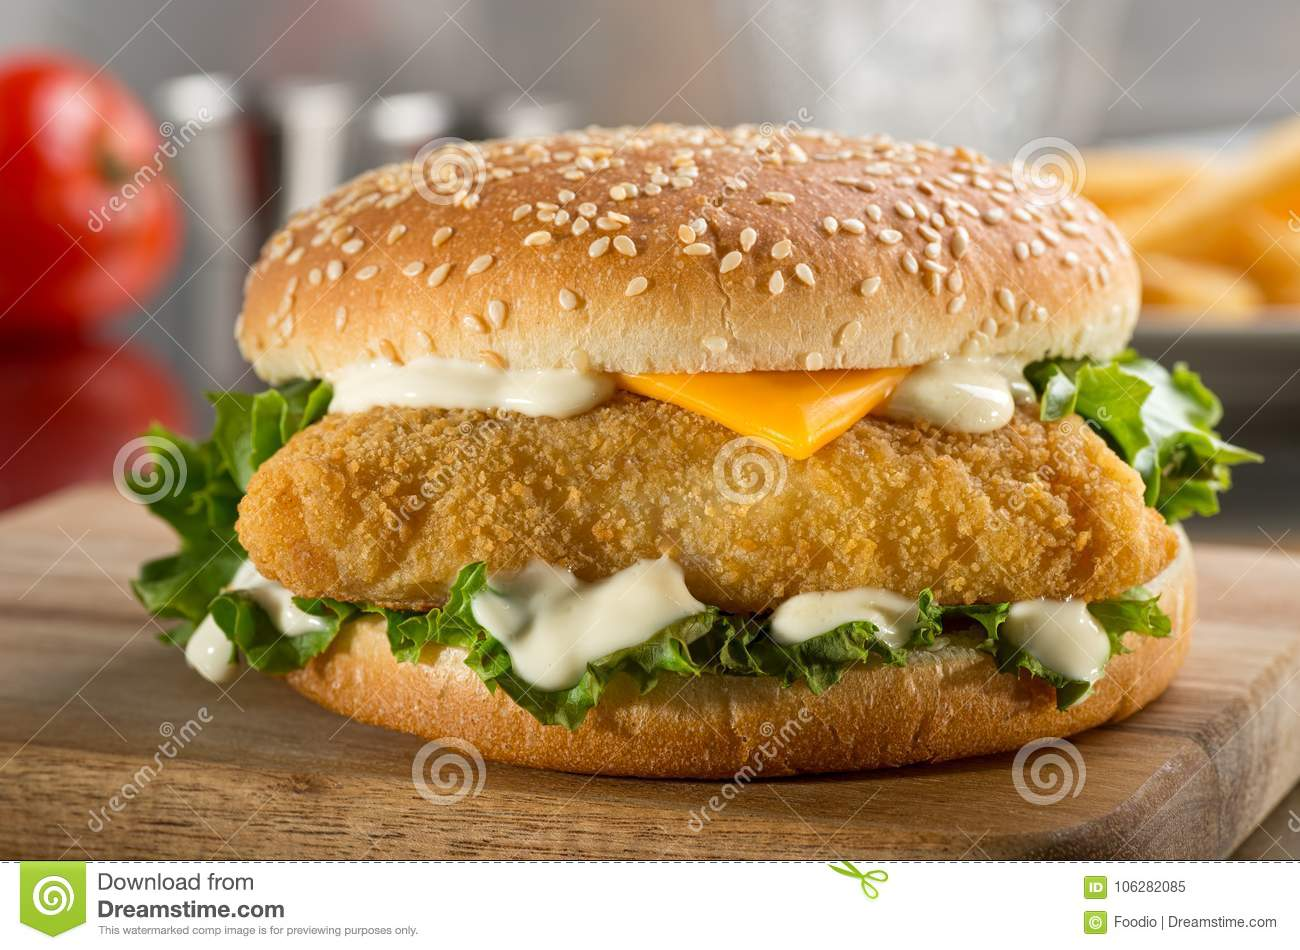 Fish burger with cheese, lettuce, and mayonnaise.